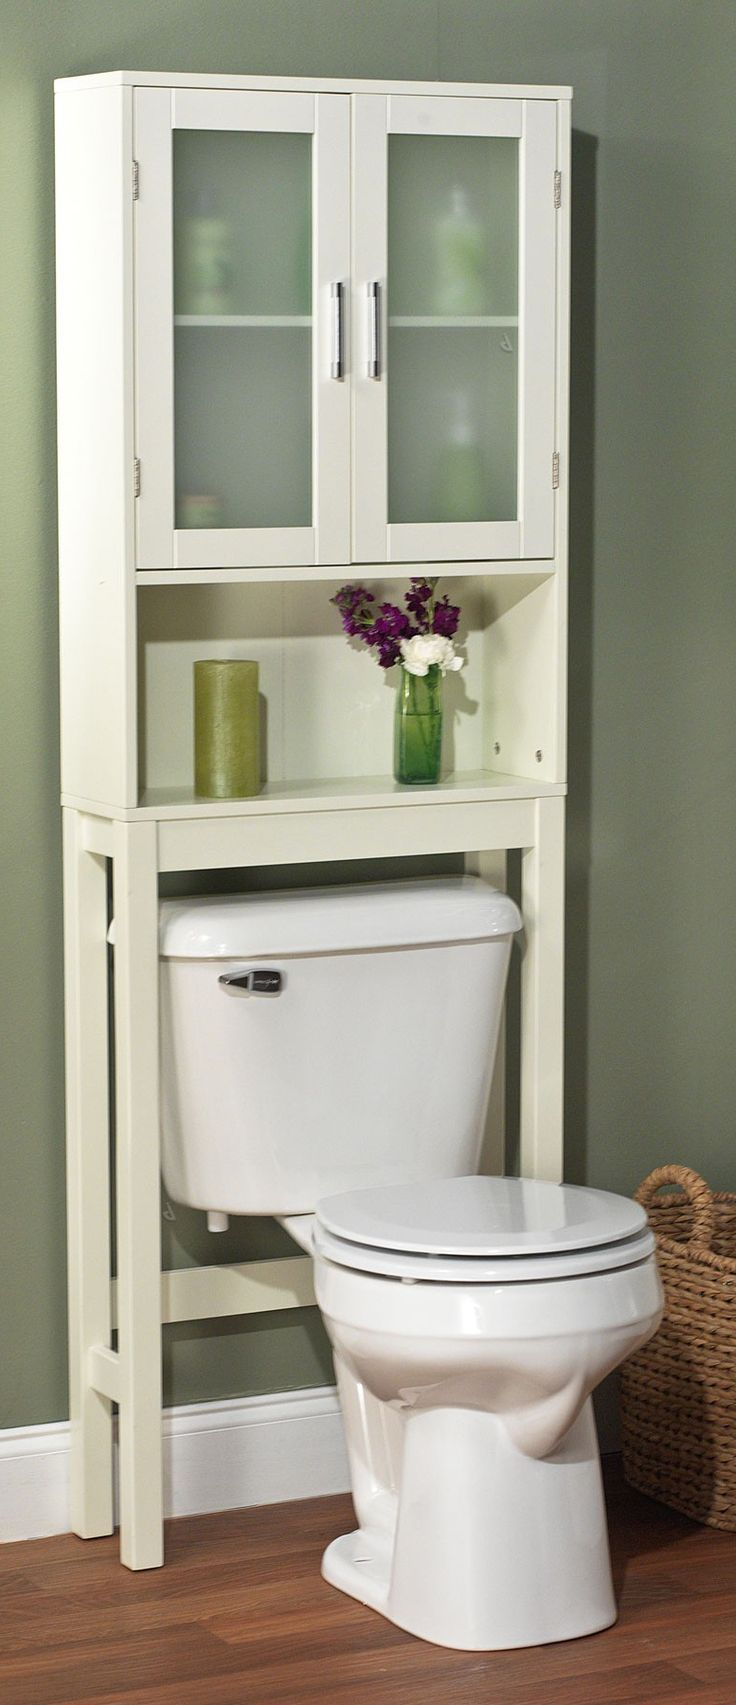 bathroom space saver over toilet cupboard such a good idea for small spaces